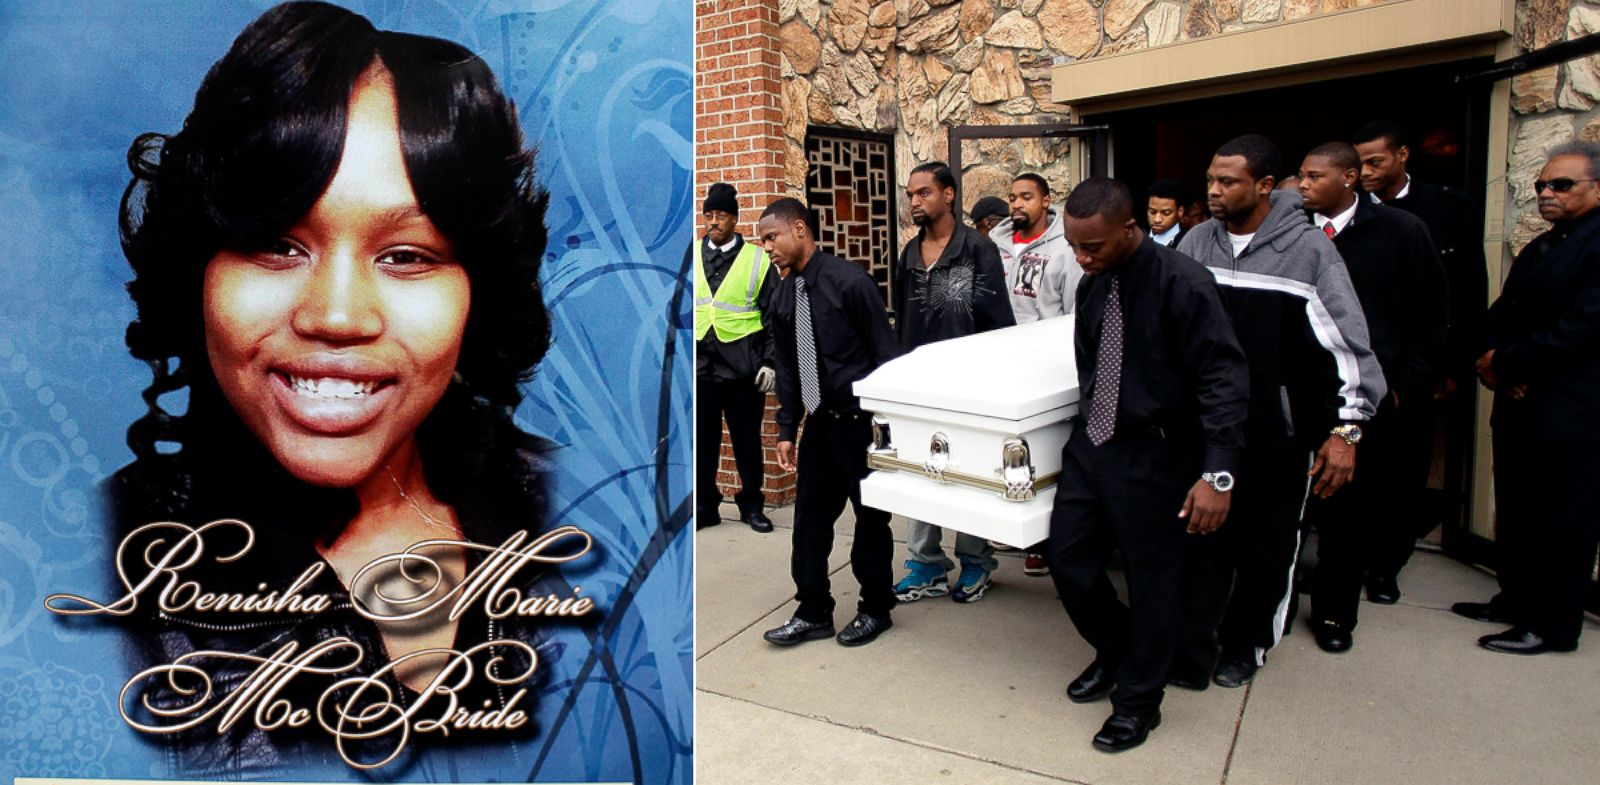 PHOTO: A mourner holds a funeral service program showing a picture of 19-year-old shooting victim Renisha McBride during her funeral service in Detroit, Nov. 8, 2013.